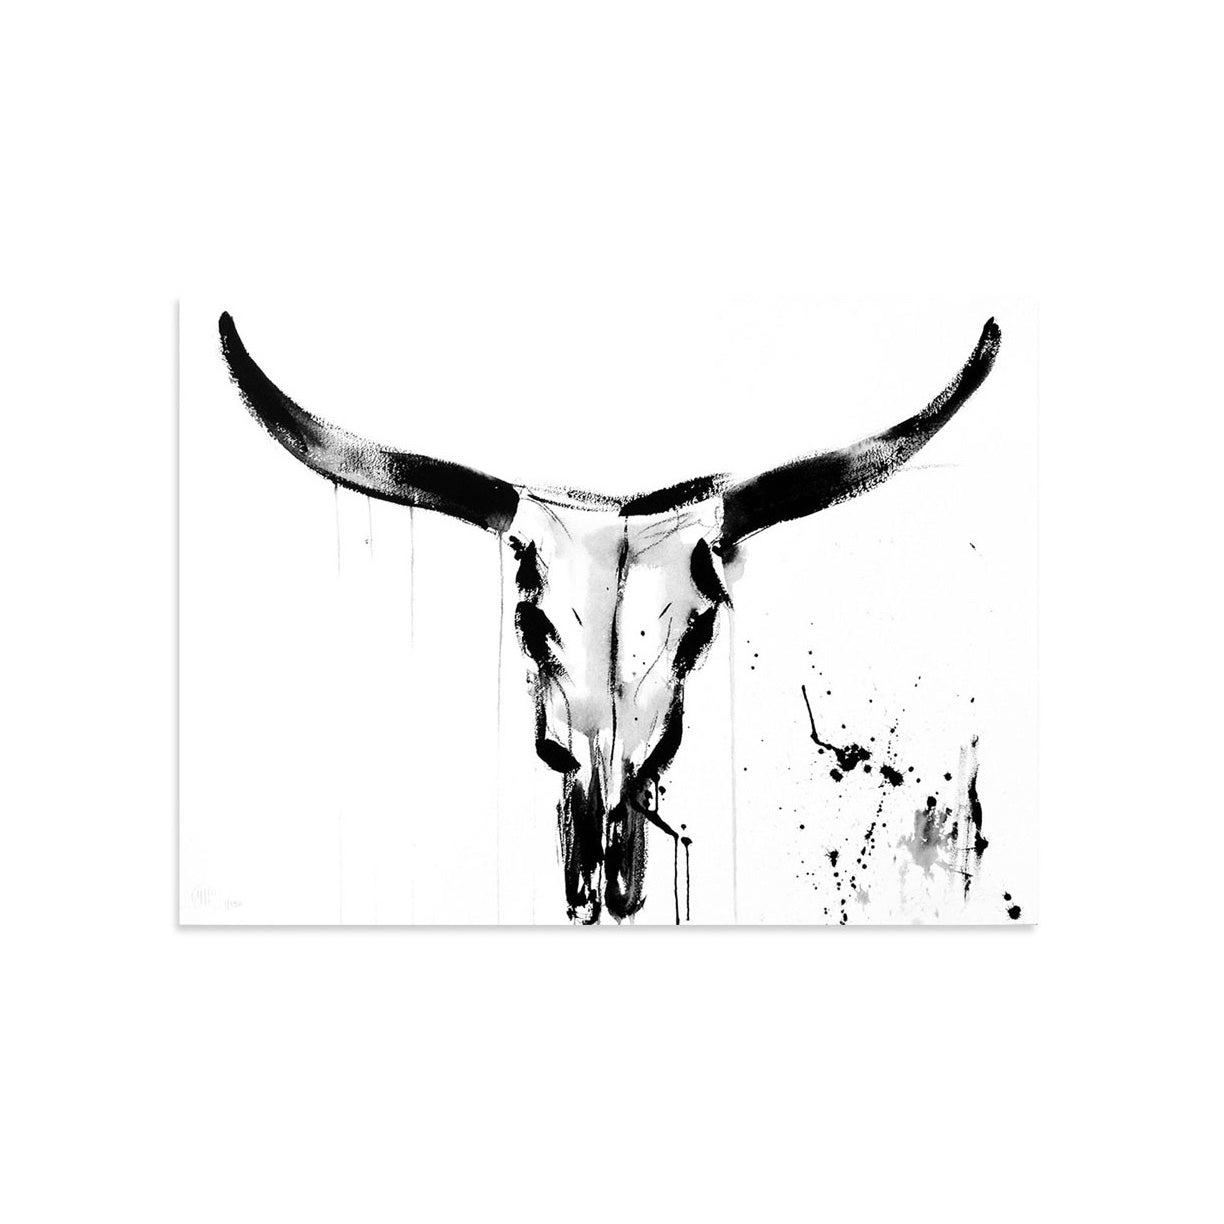 Toro by Jenna Snyder-Phillips | Print | Poster Child Prints